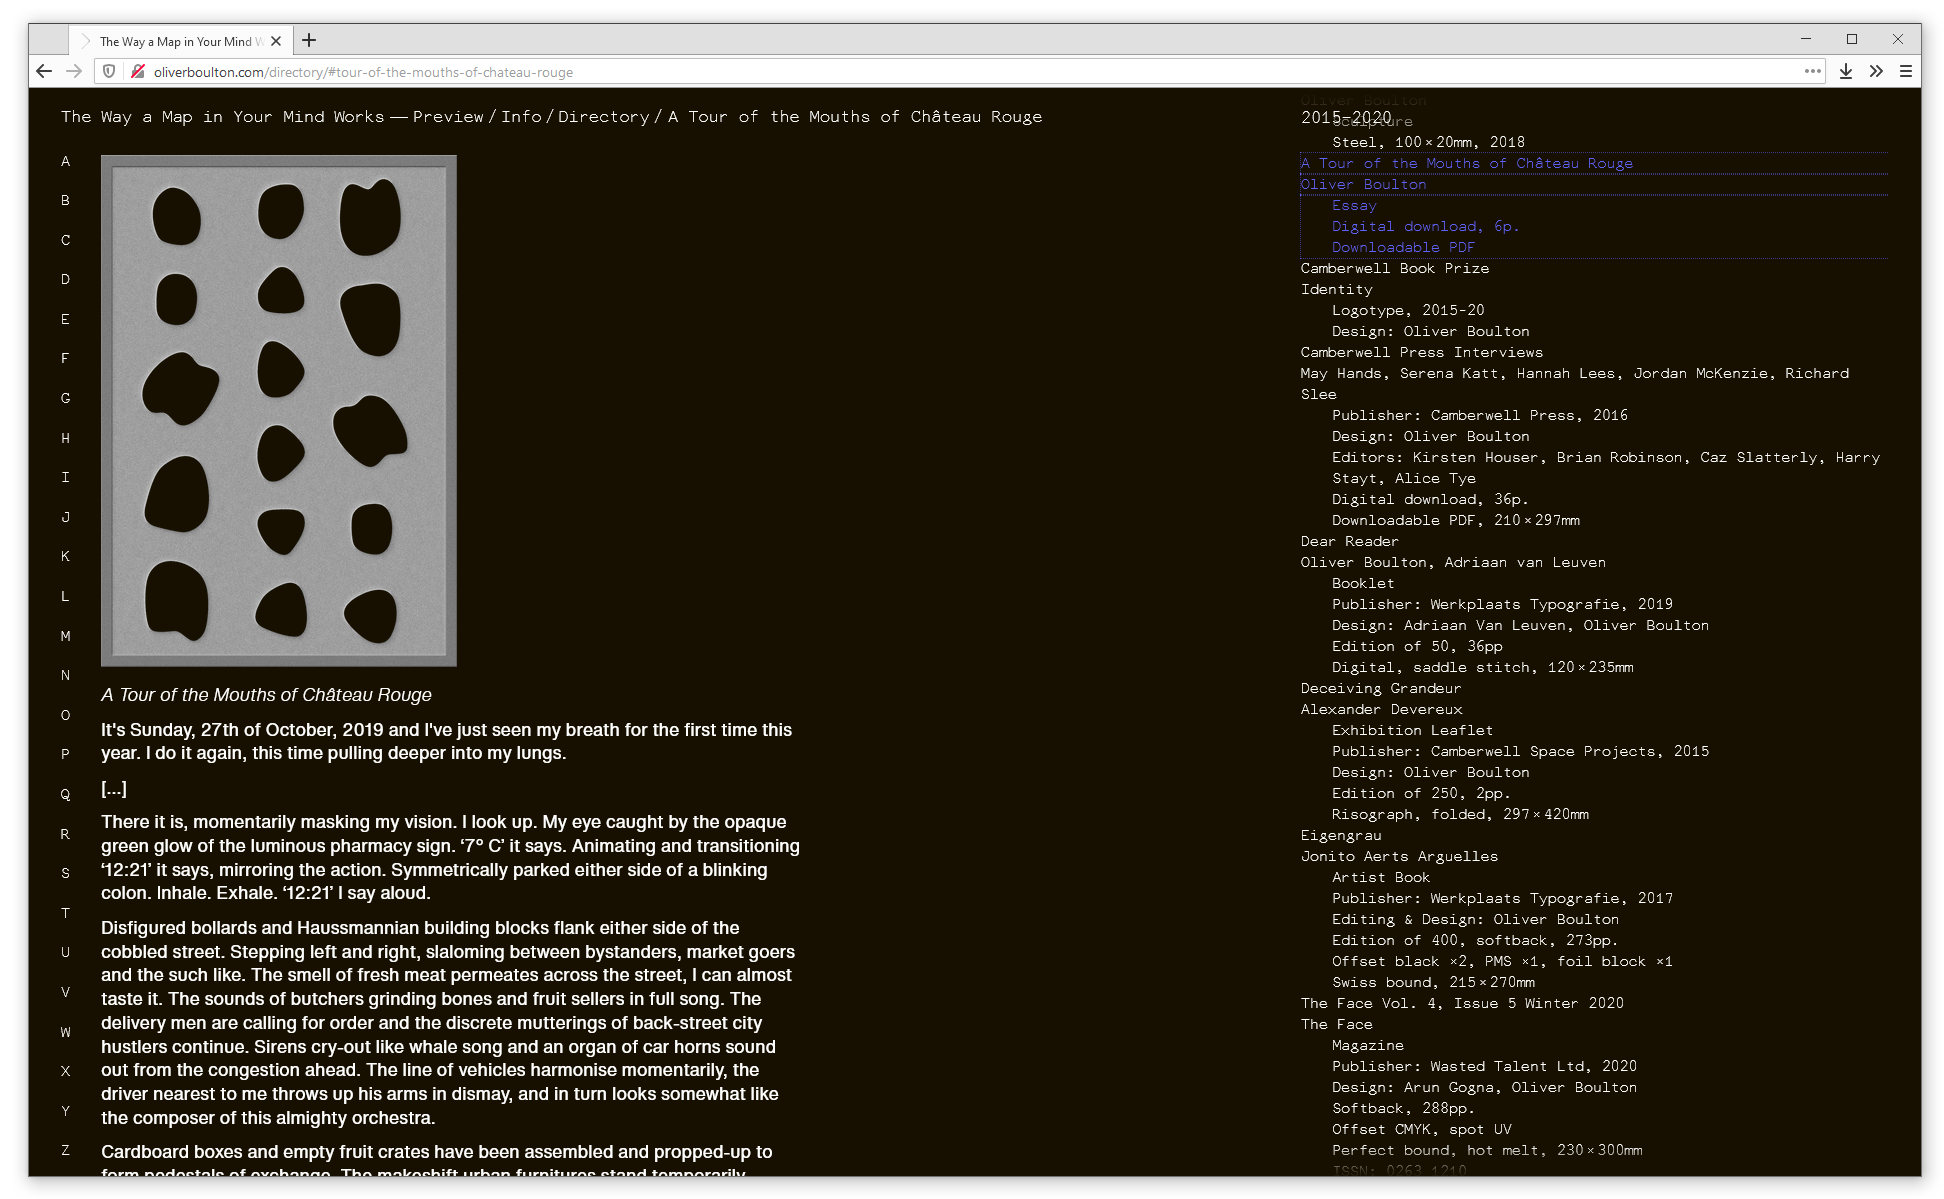 Screenshot of web browser showing the 'Information' page on oliverboulton.com. Several paragraphs of text about Oliver are visible text to a project timeline and a colophon.